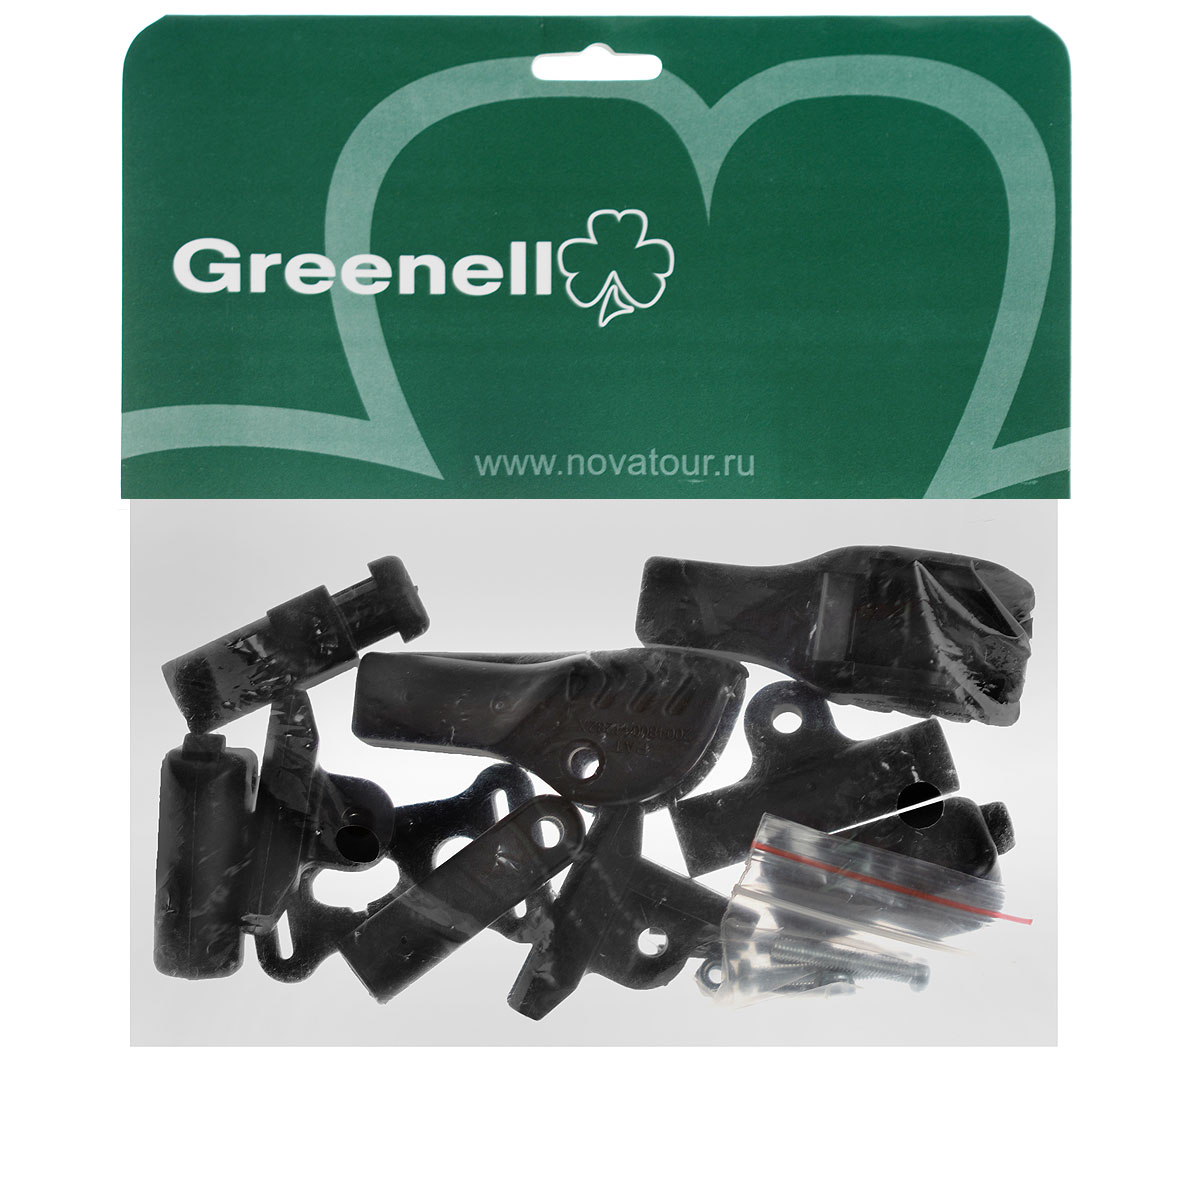 Ремкомплект Greenell №1, для палаток: Aughris 2, Castlerea 4, Clare 3, Dingle 3, Dingle light 3, Howth 4, Larne 2, Private, Tralee 2, Tralee 3 modern living room sofa 2 3 french designer genuine leather sofa 2 3 sectional sofal set love seat sofa 8068